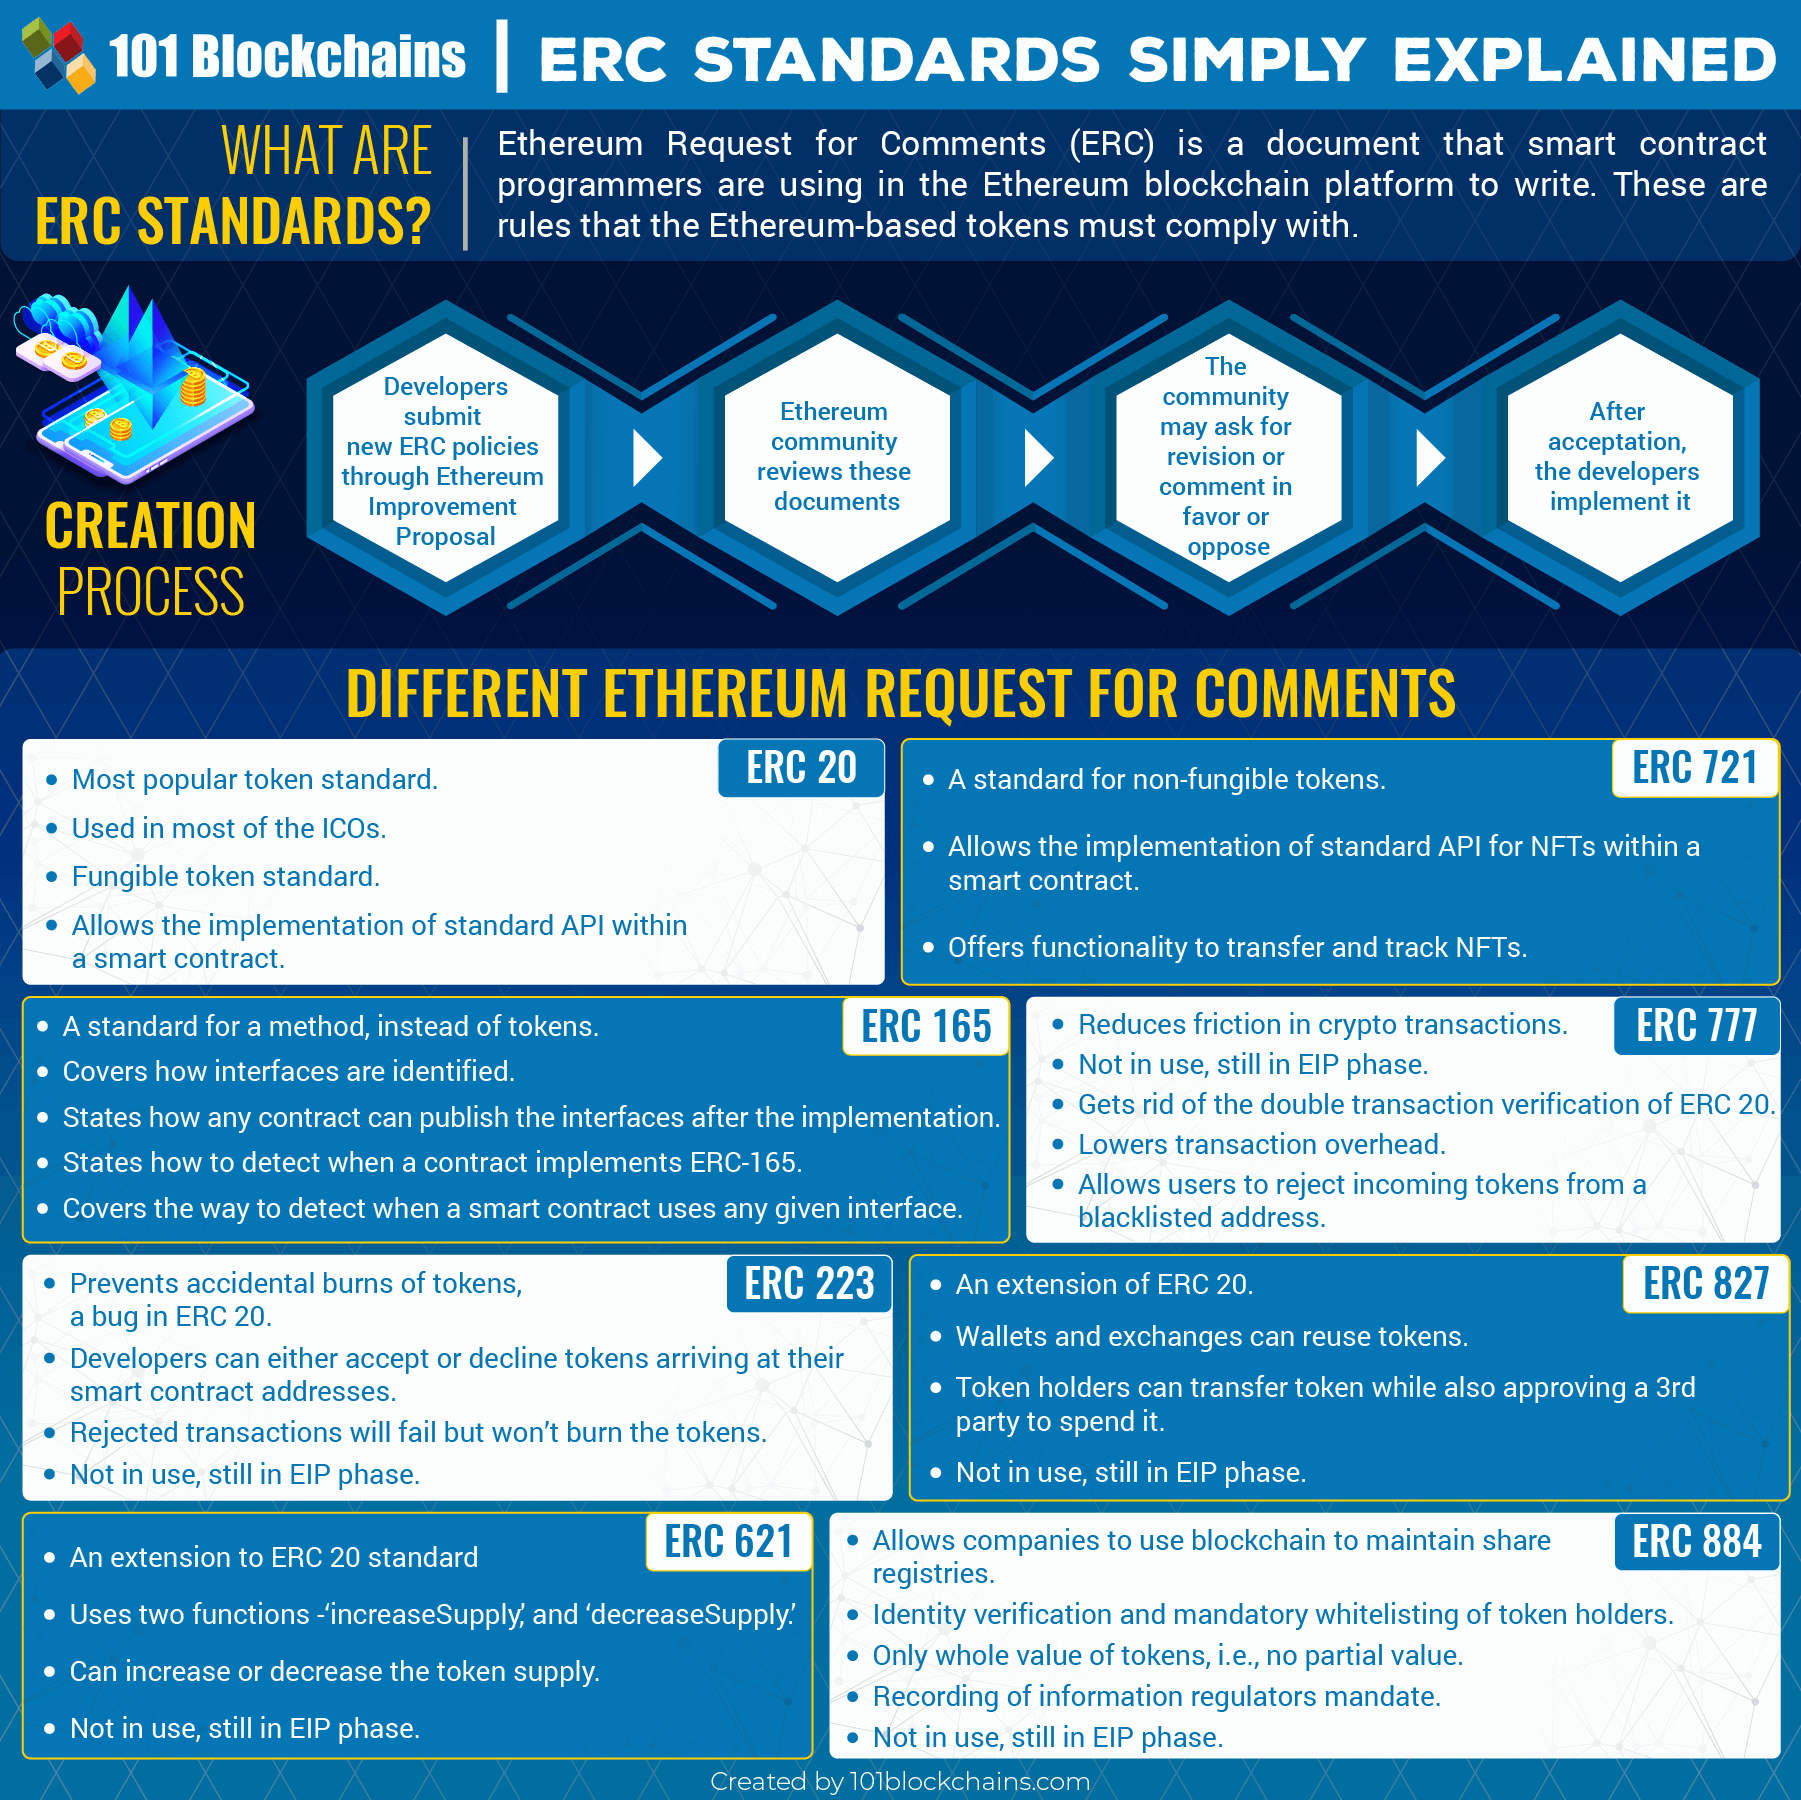 List of ERC Standards